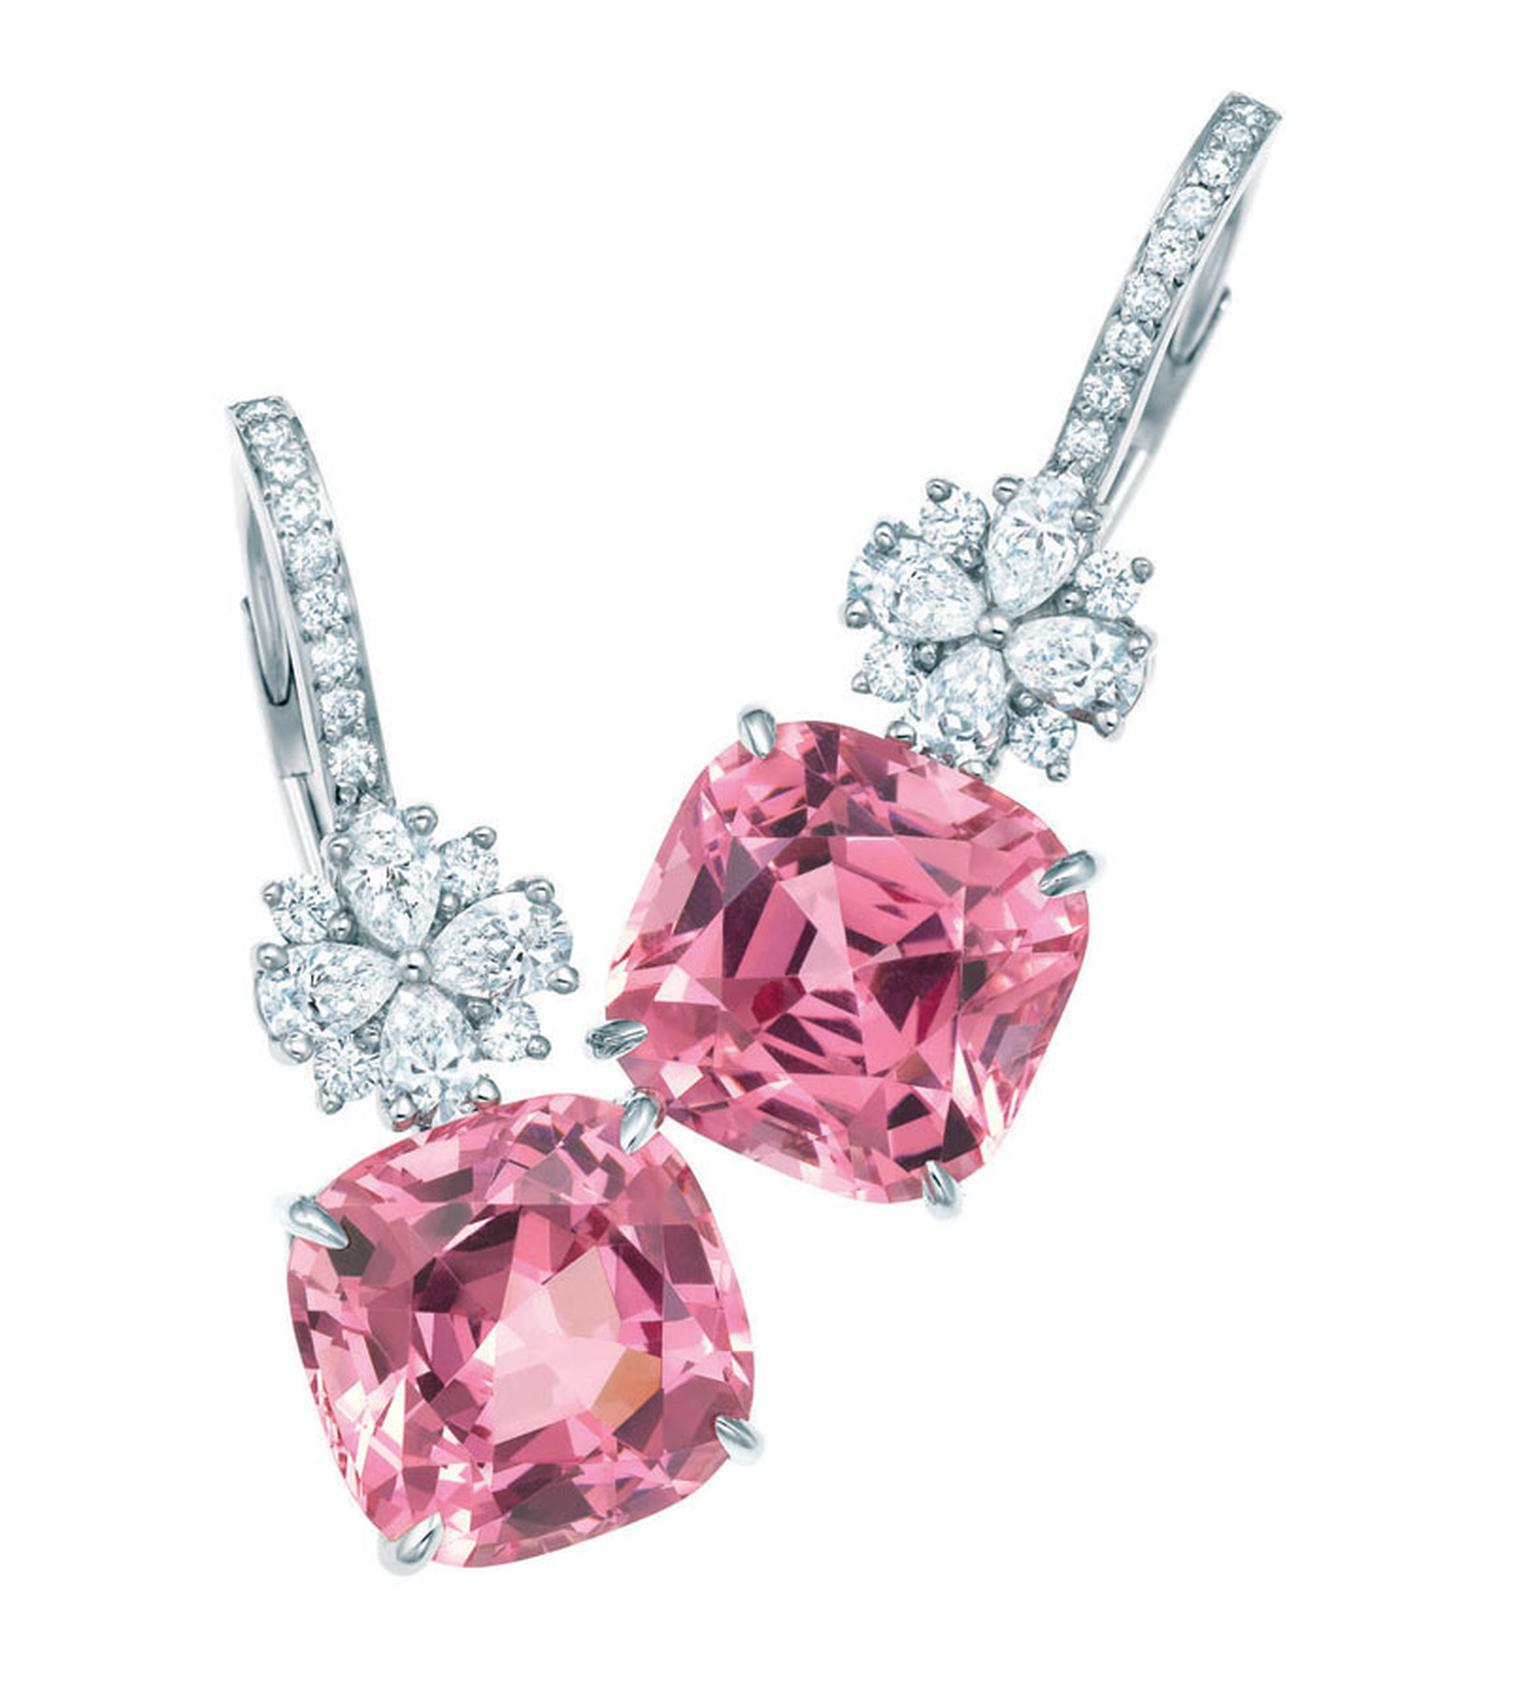 Pink spinel and diamond earrings in platinum